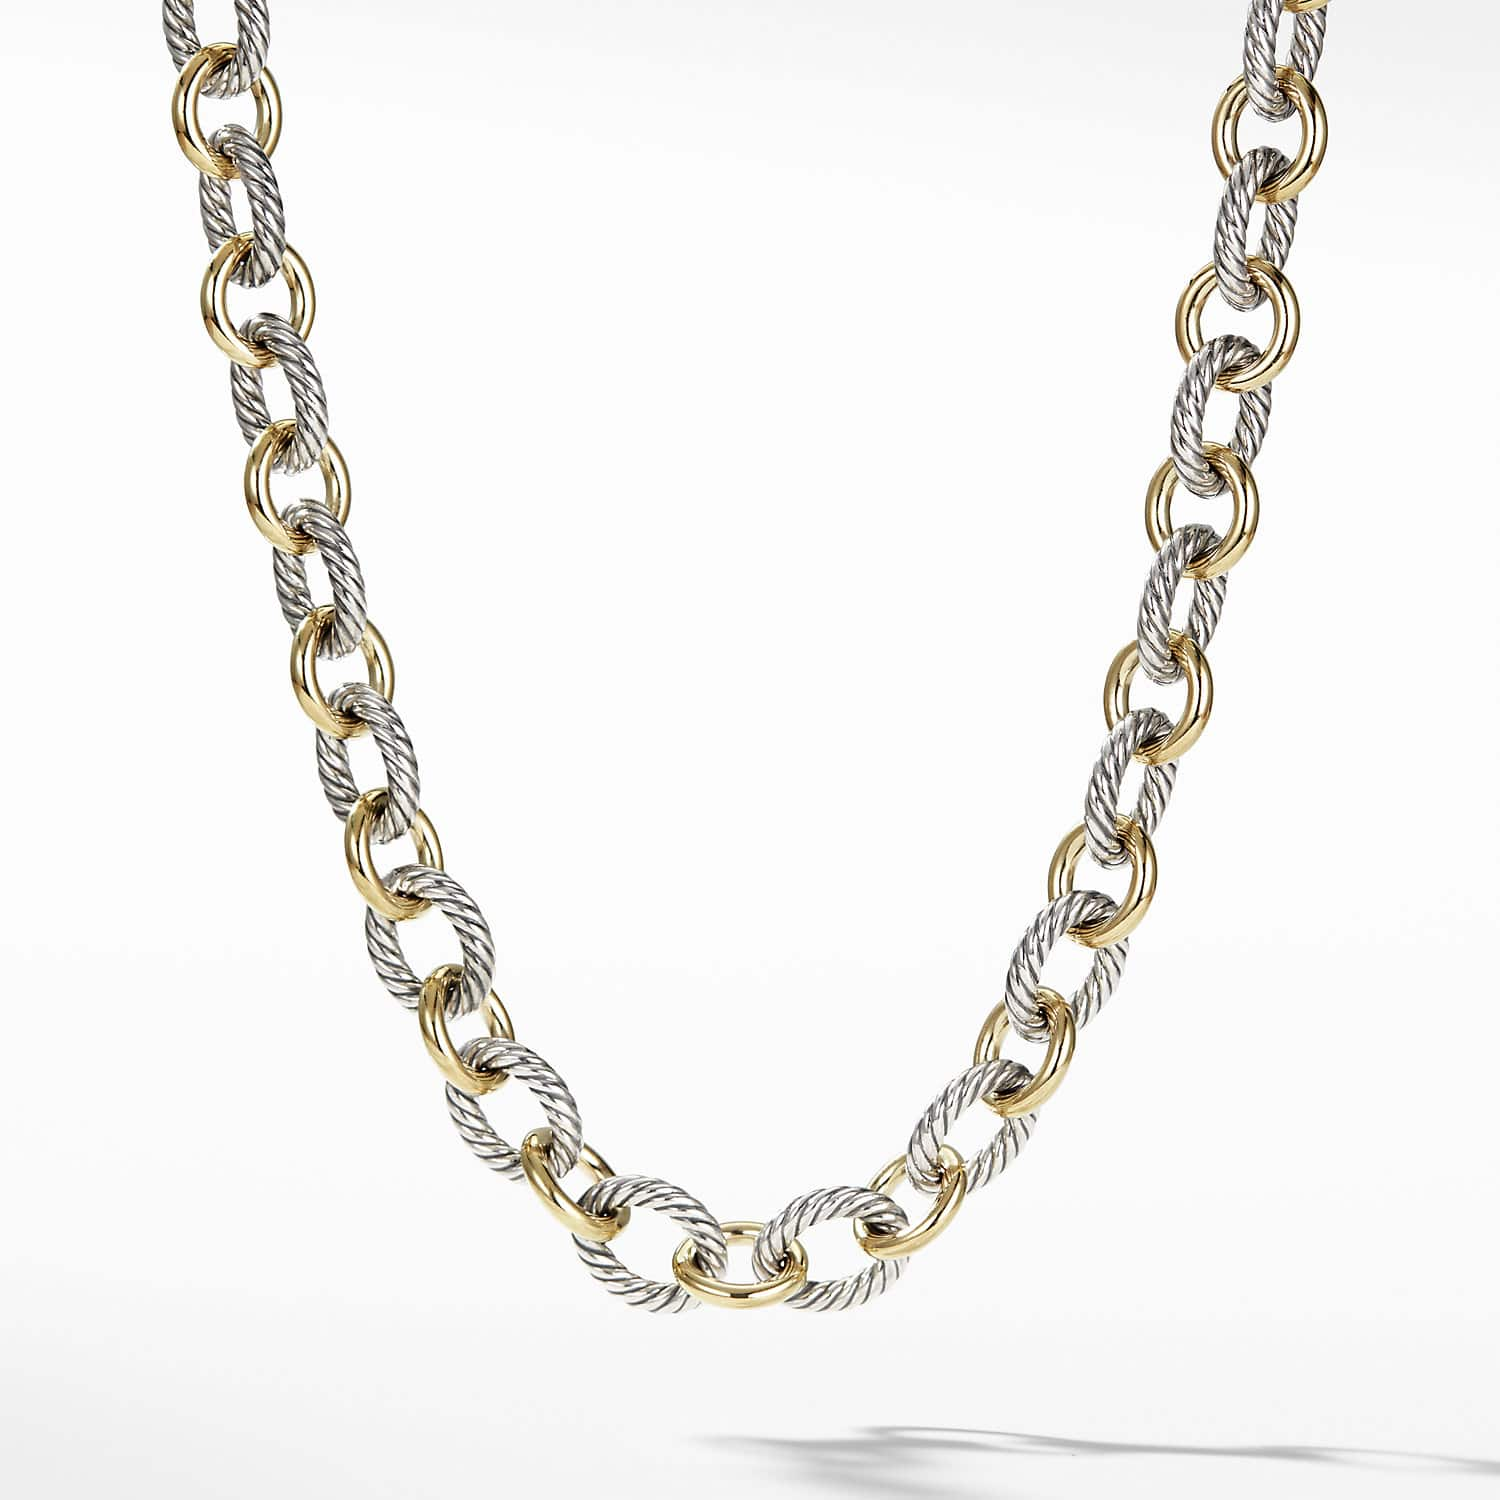 4cc8f9c099dc2 Large Oval Link Necklace with 18K Gold | David Yurman